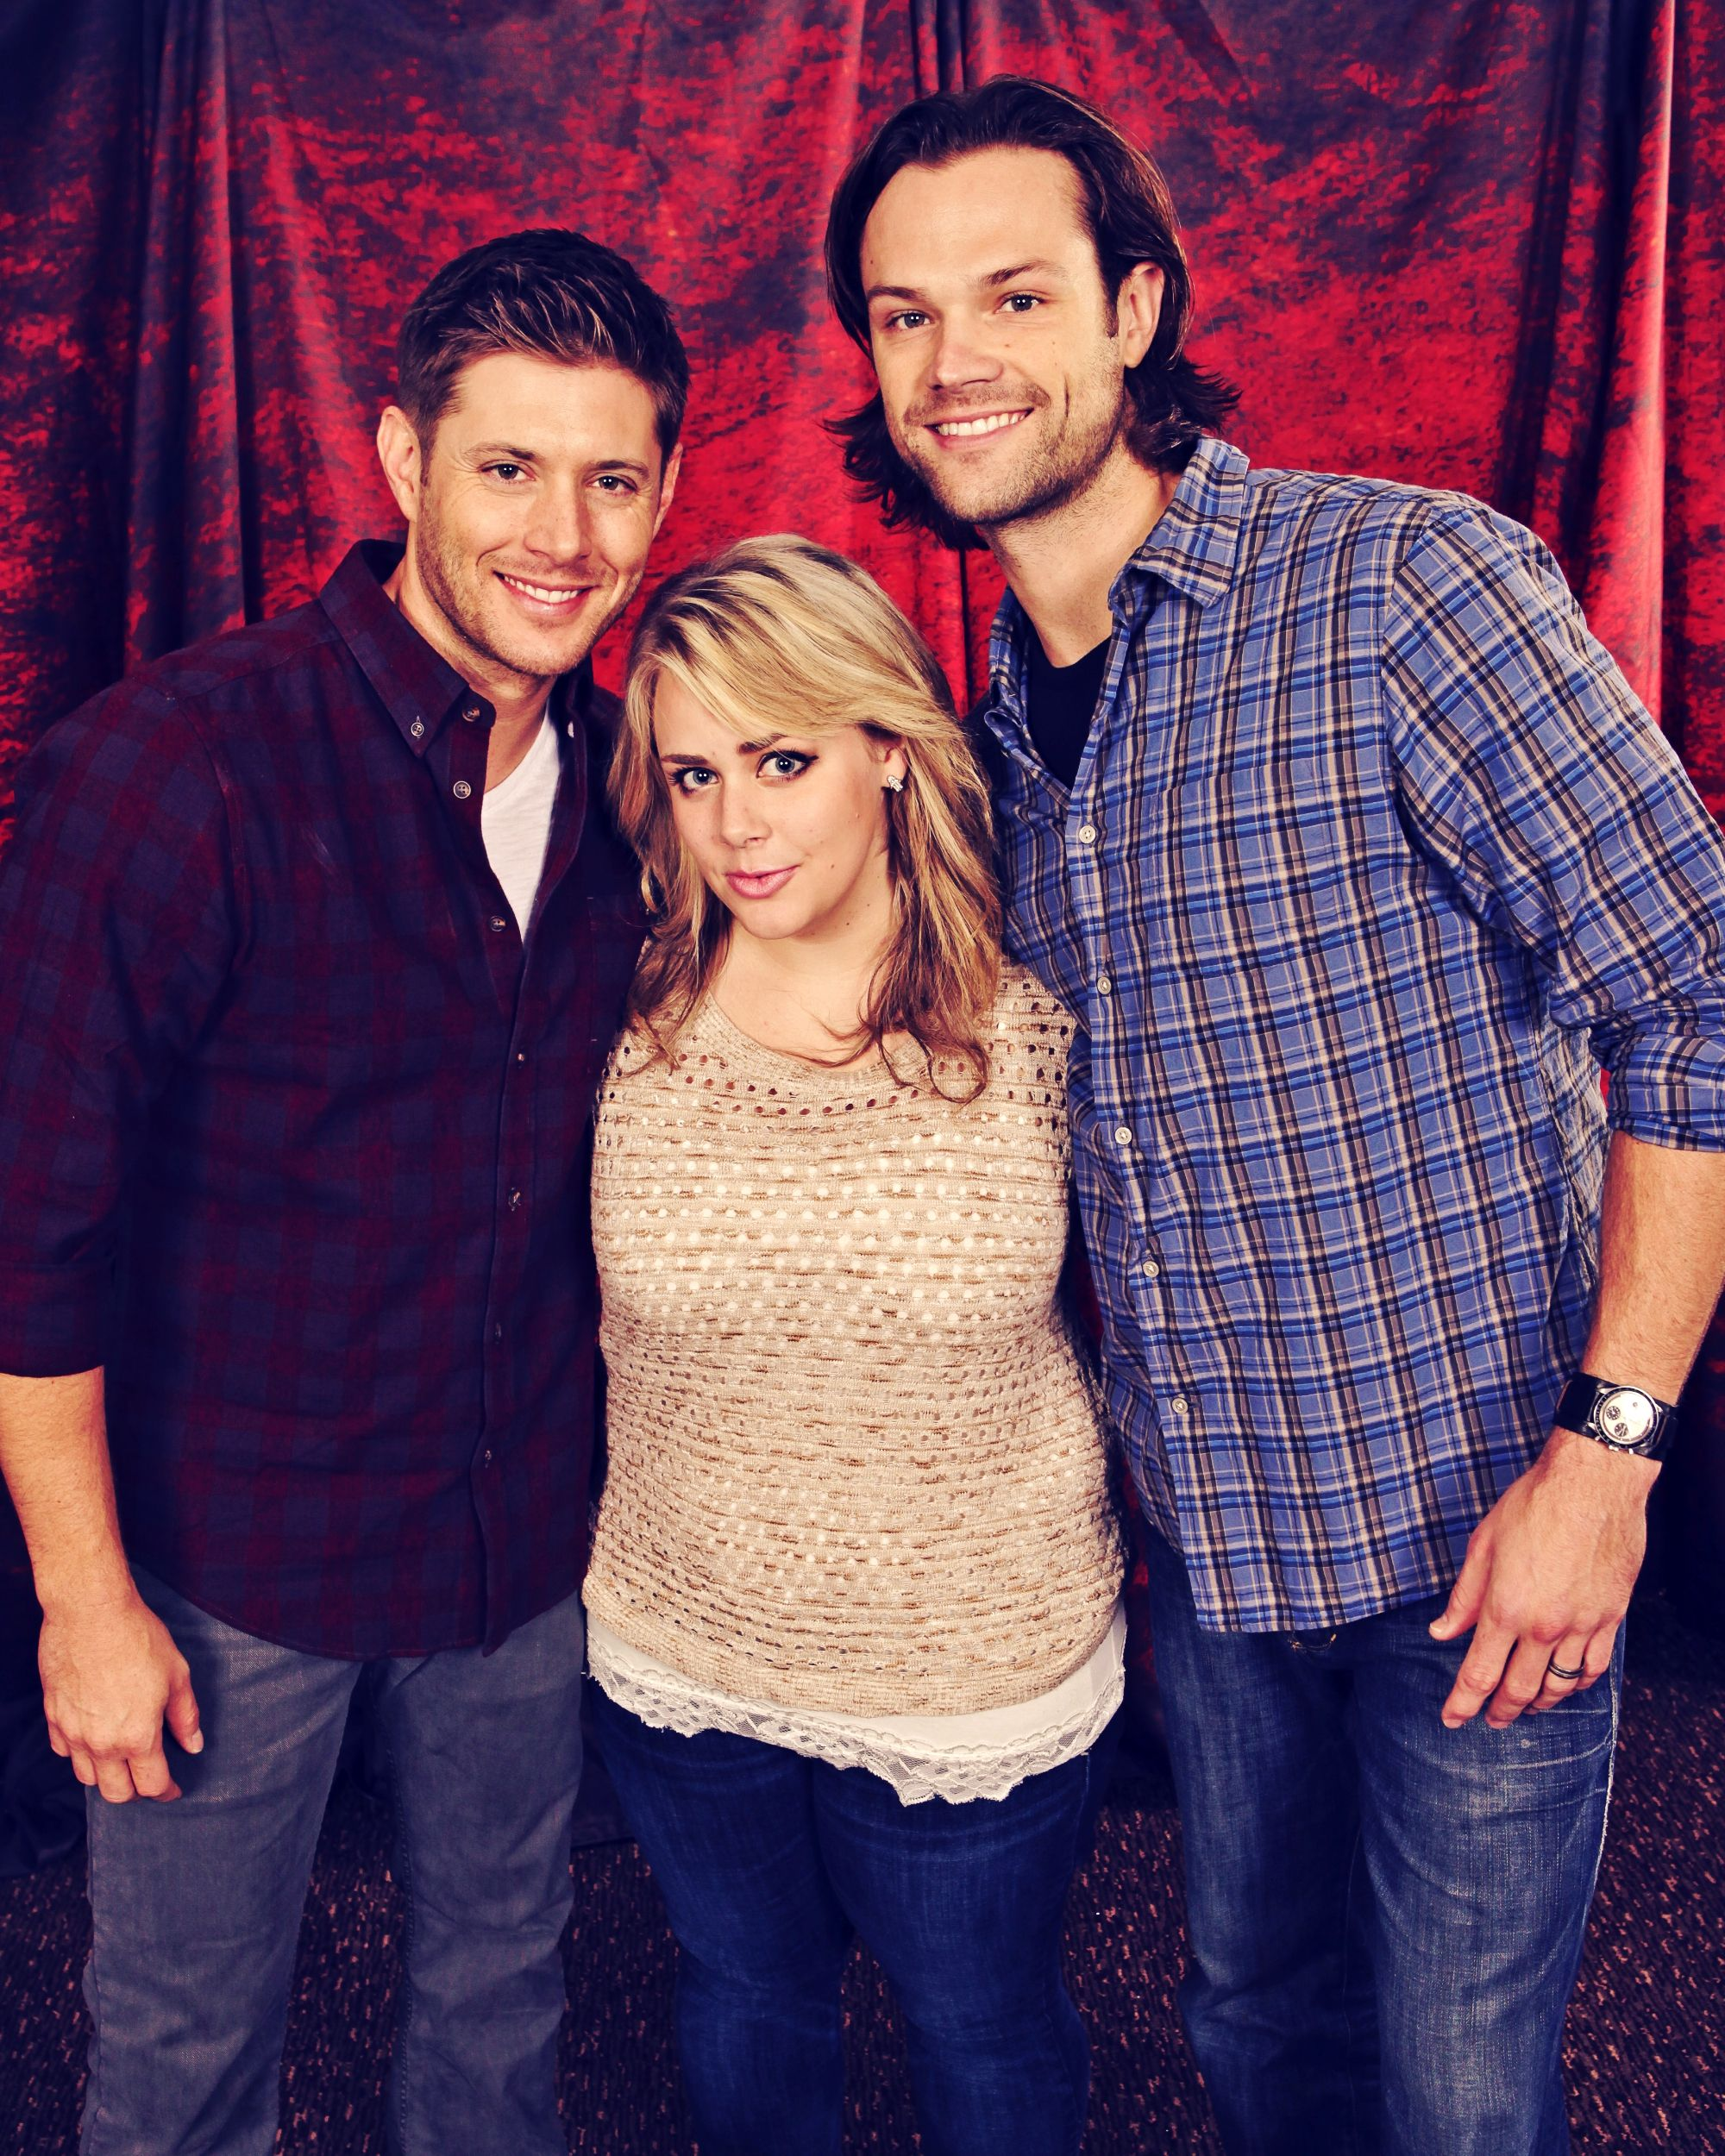 Heres my friend alisha morris with jensen ackles and jared supernatural convention heres my friend alisha morris with jensen ackles and jared padalecki of course kristyandbryce Images